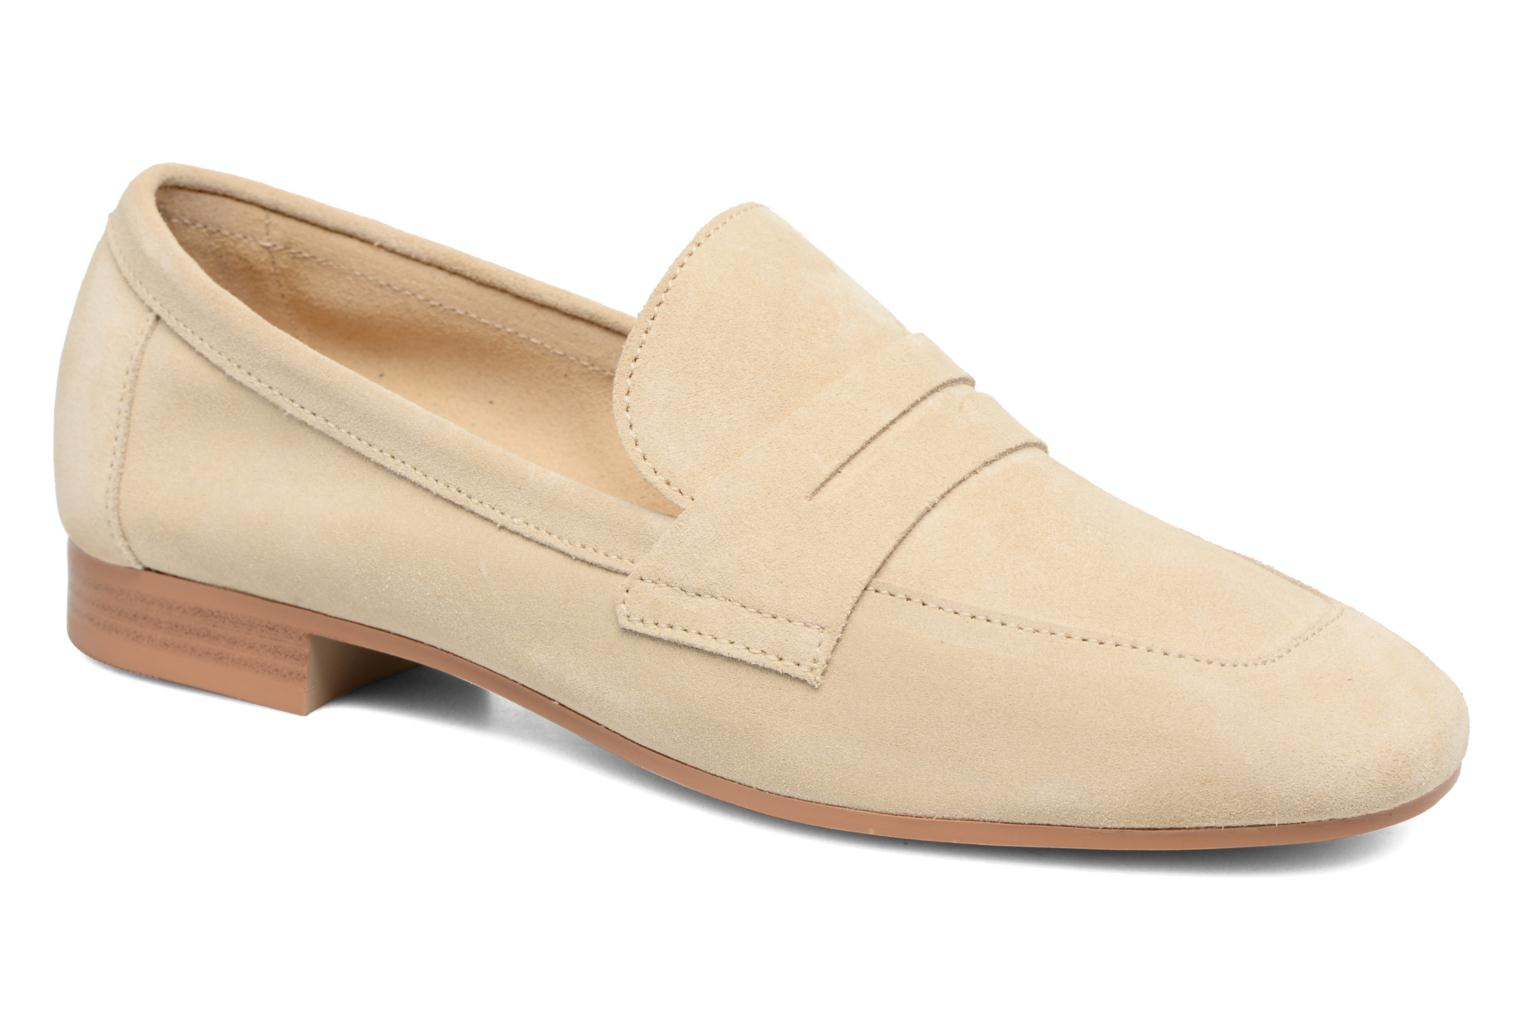 Aria Loafer by EspritRebajas - 50%